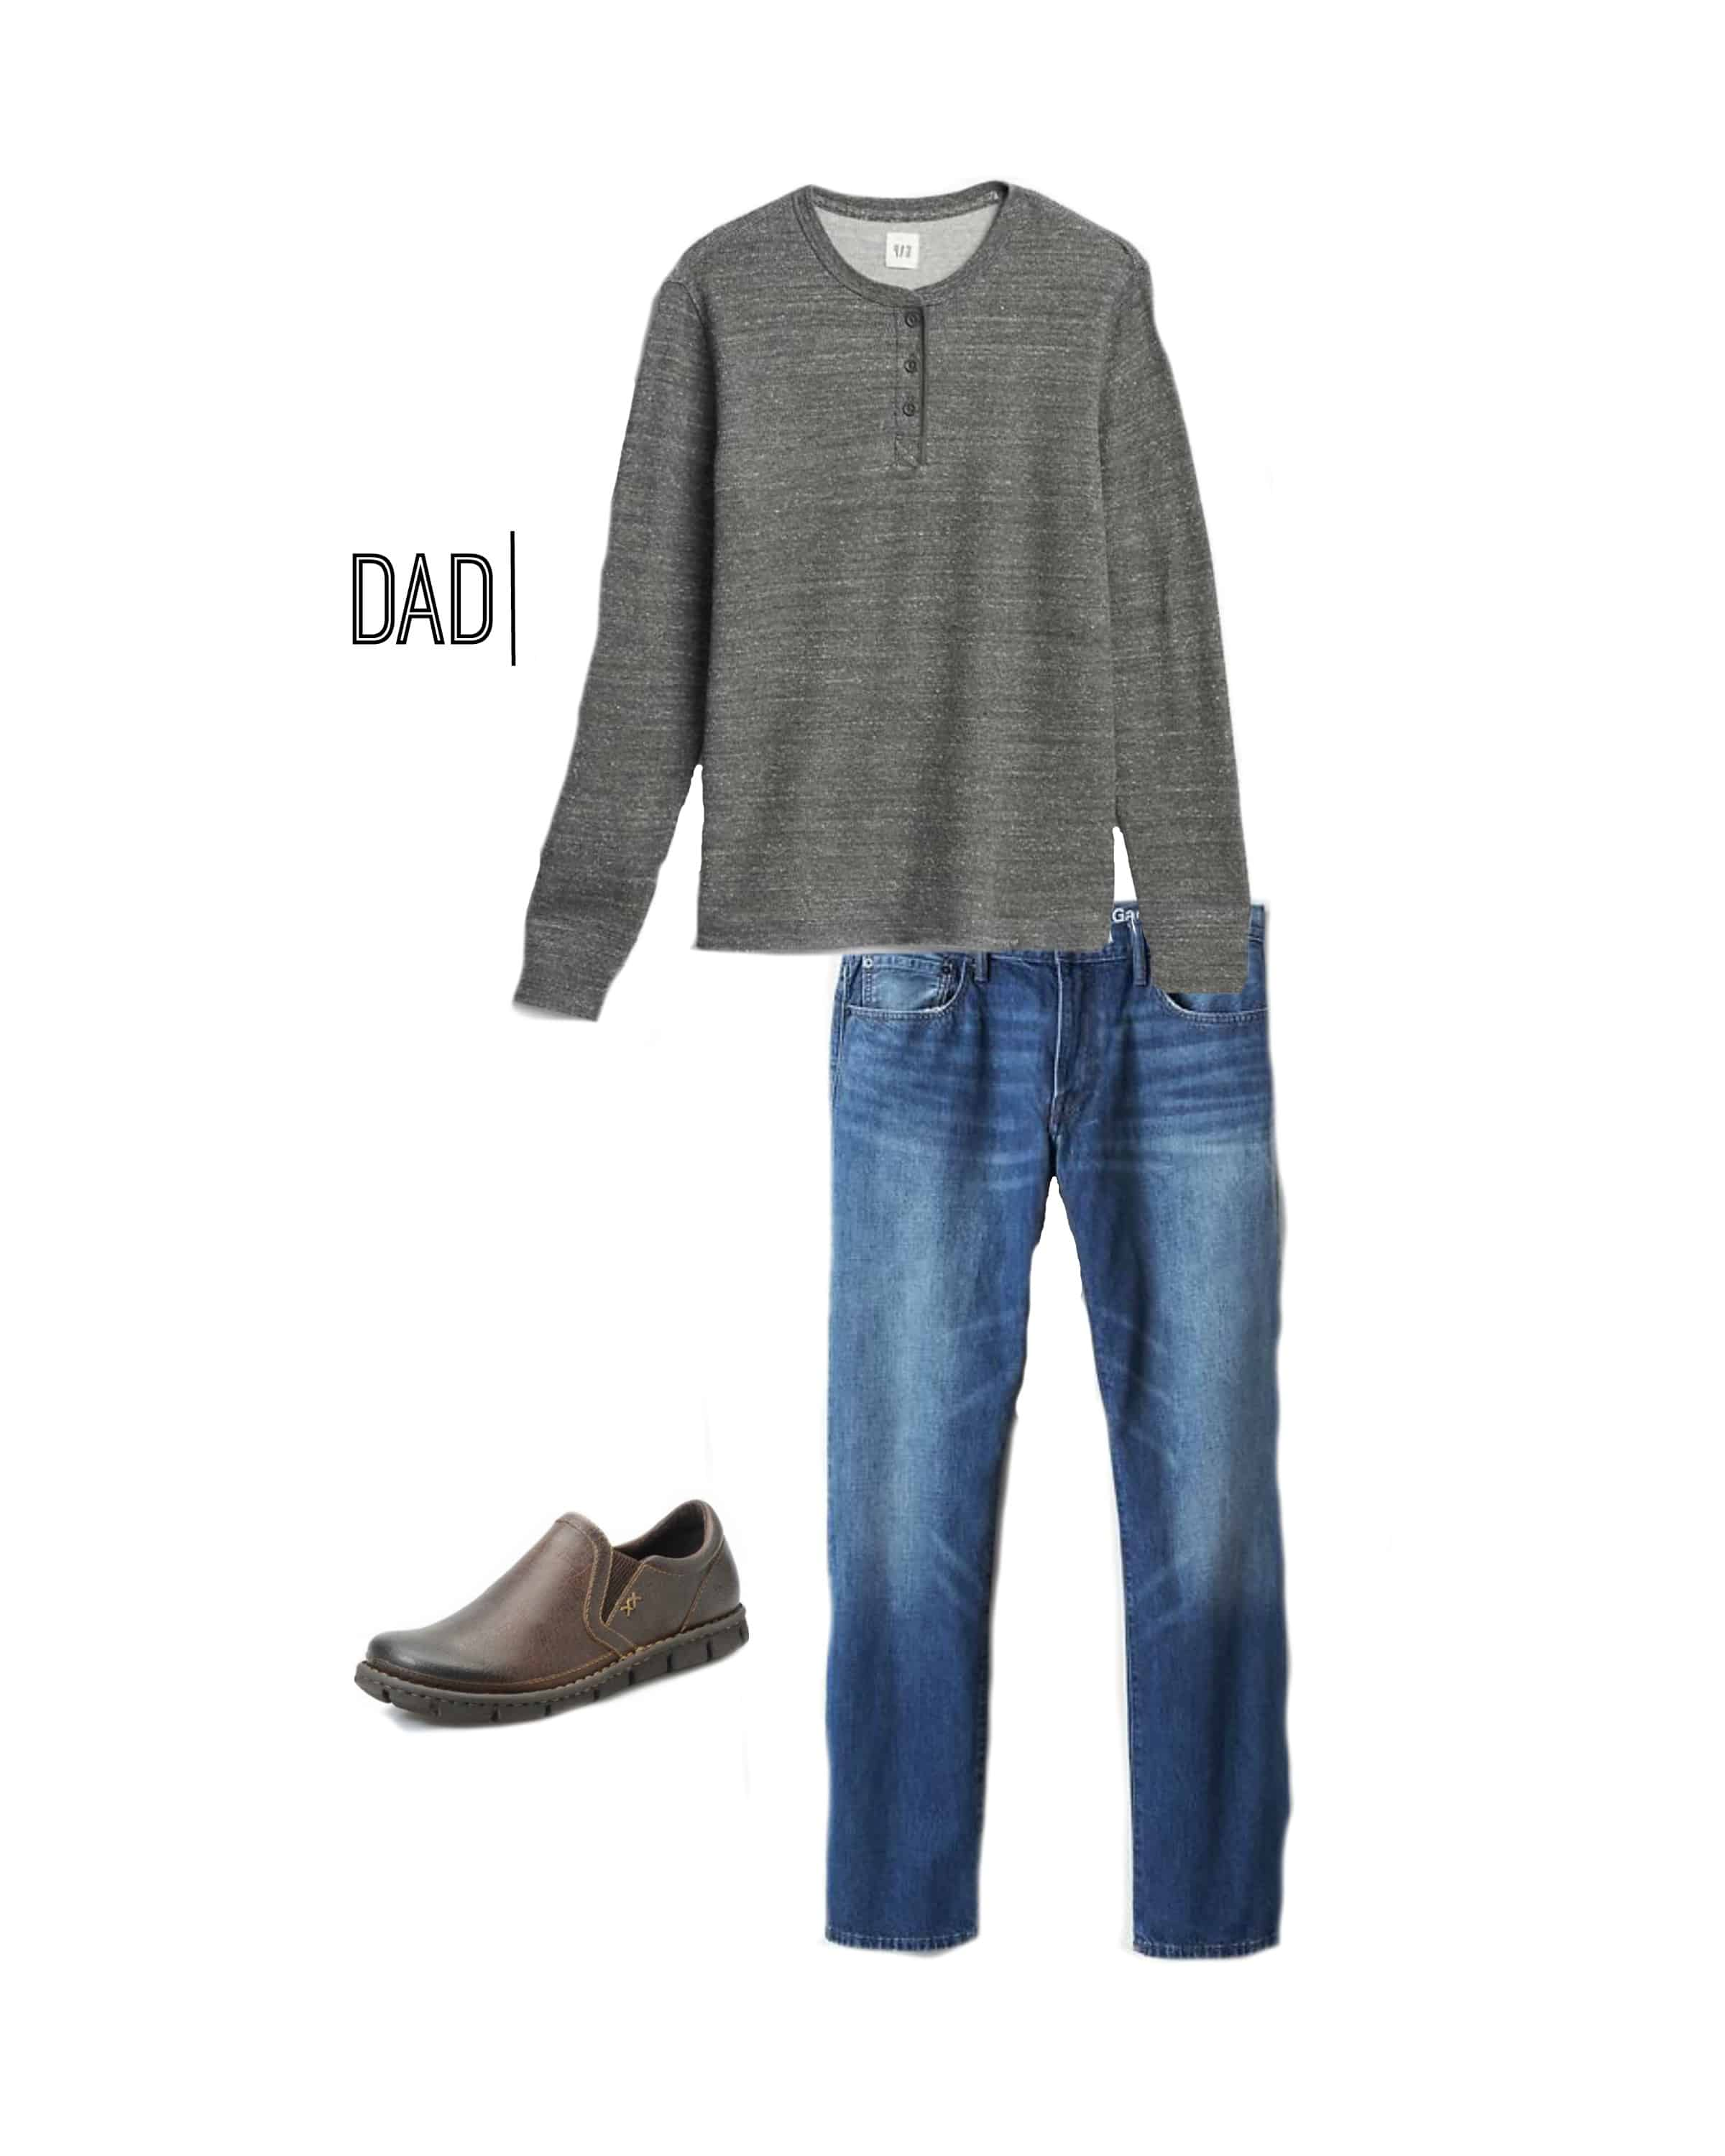 A fantastic outfit for Dad to wear for Fall family photos!